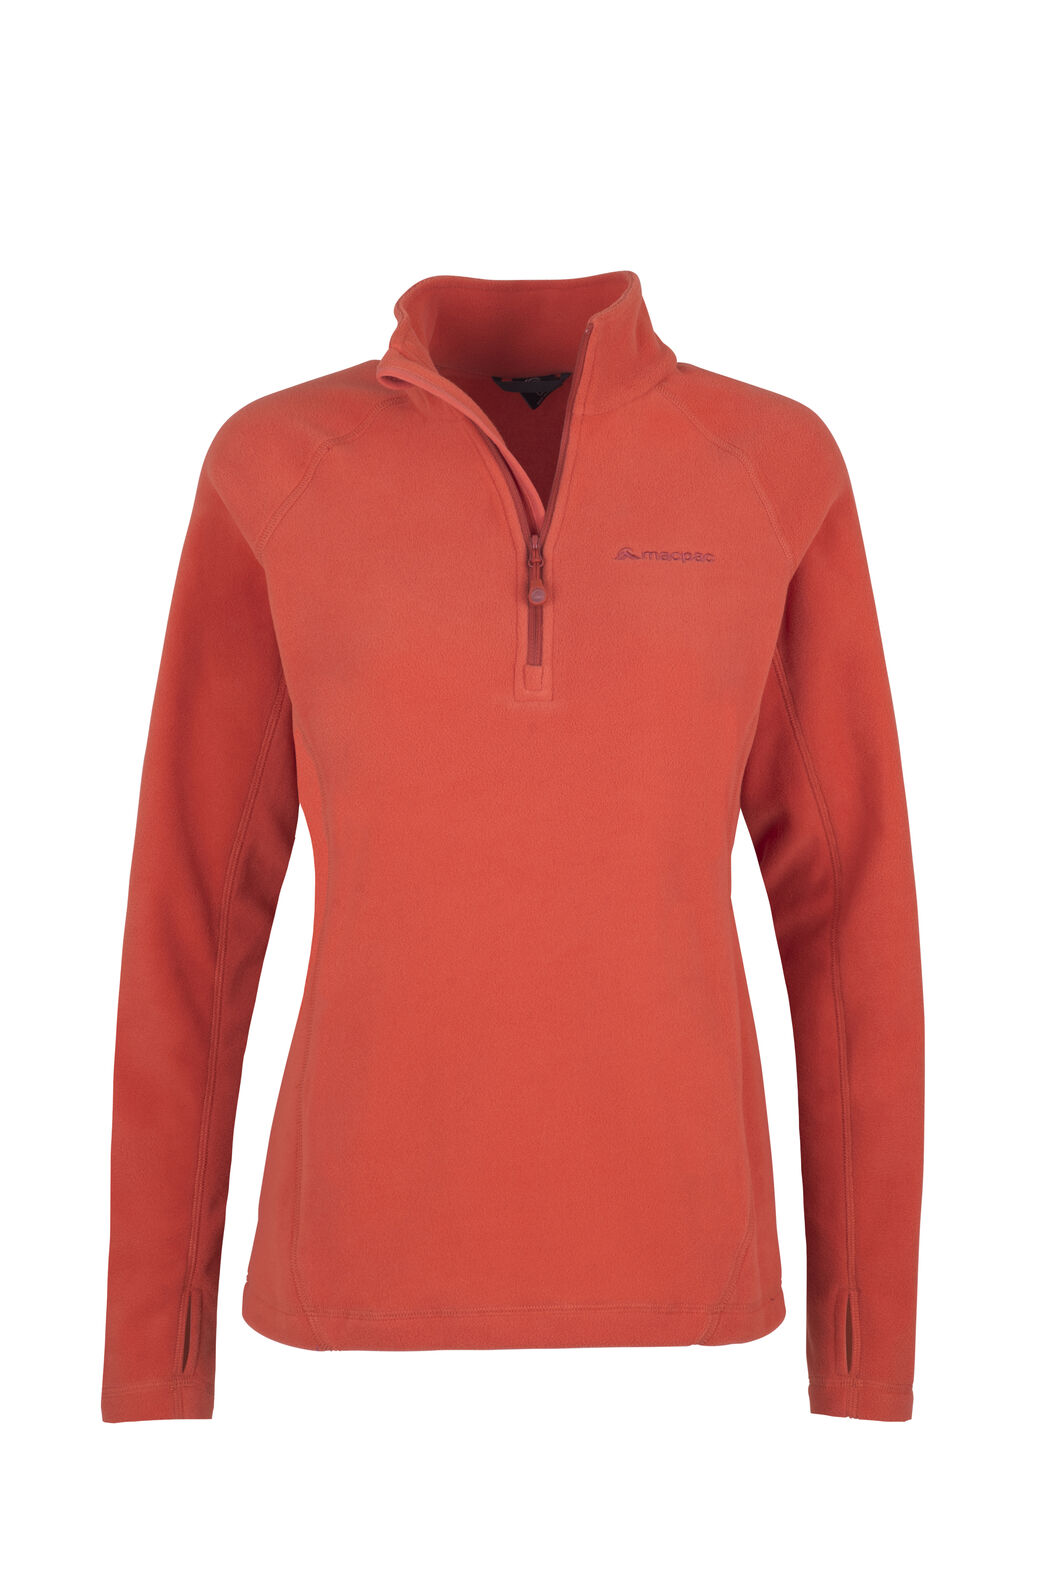 Macpac Tui Fleece Pullover - Women's, Chilli, hi-res